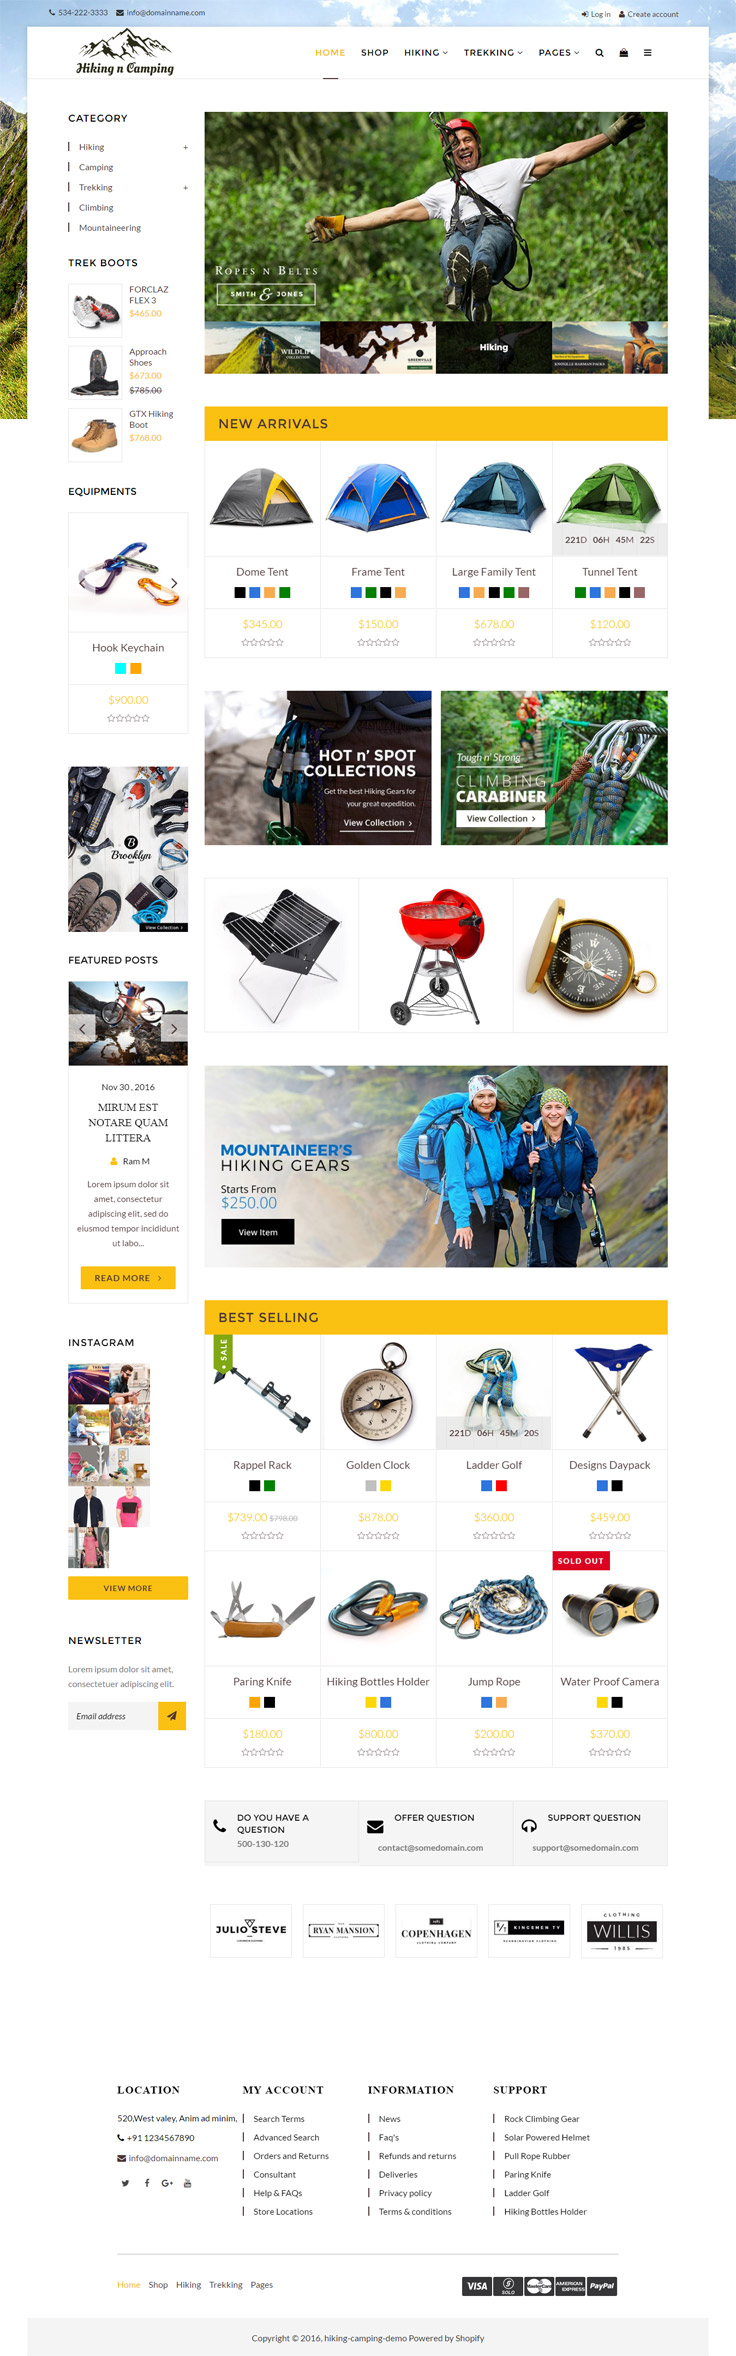 Hiking and Camping shopify theme Shopify theme, Outdoor